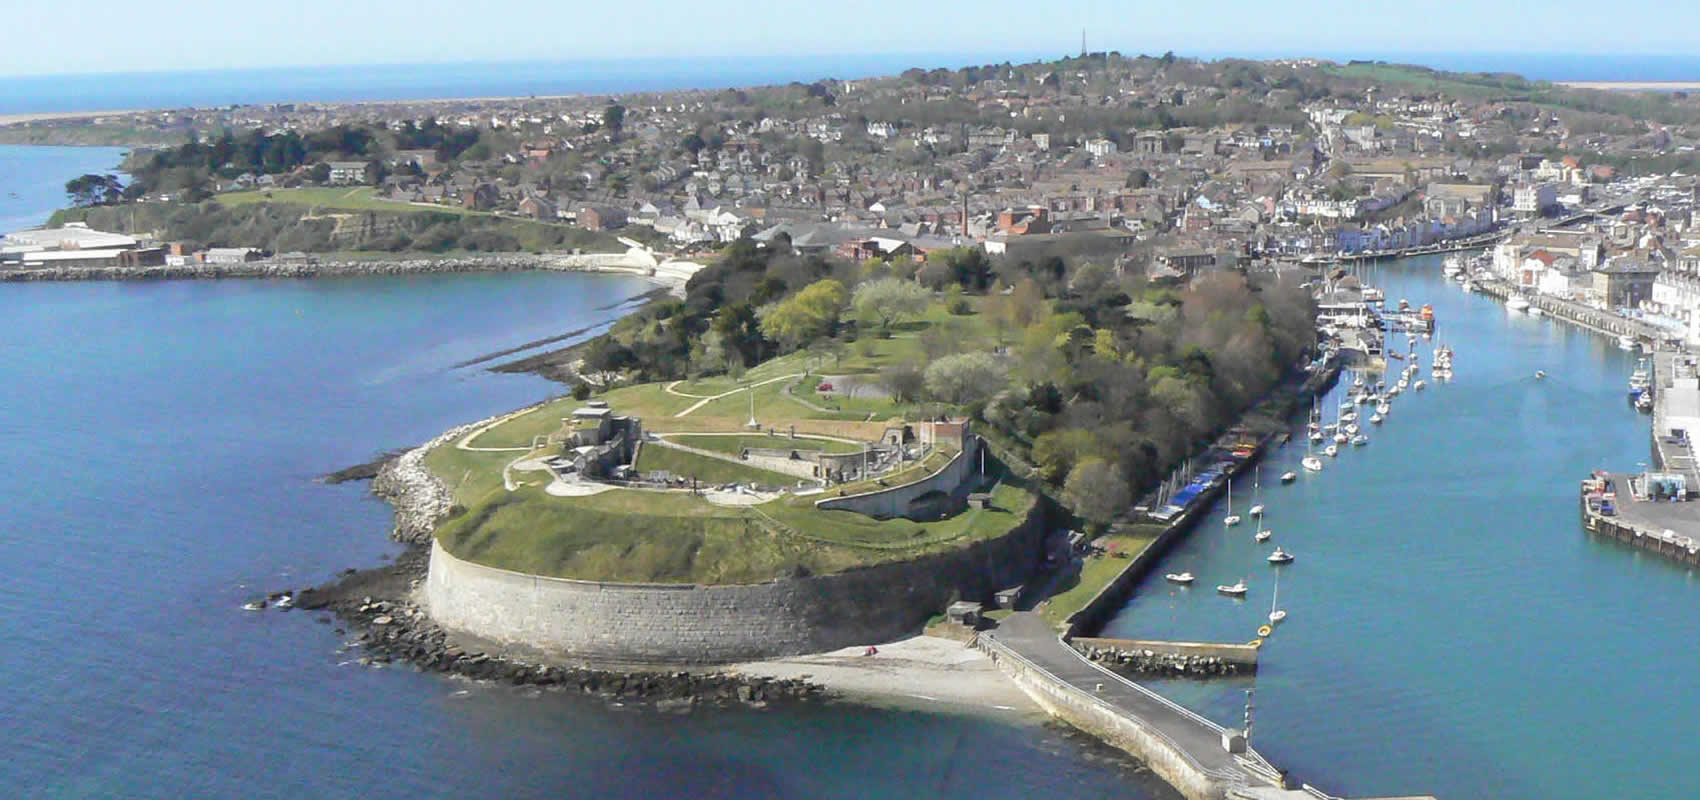 Nothe Fort - Weymouth's stunning Historic Sea Fort on the Jurassic ...